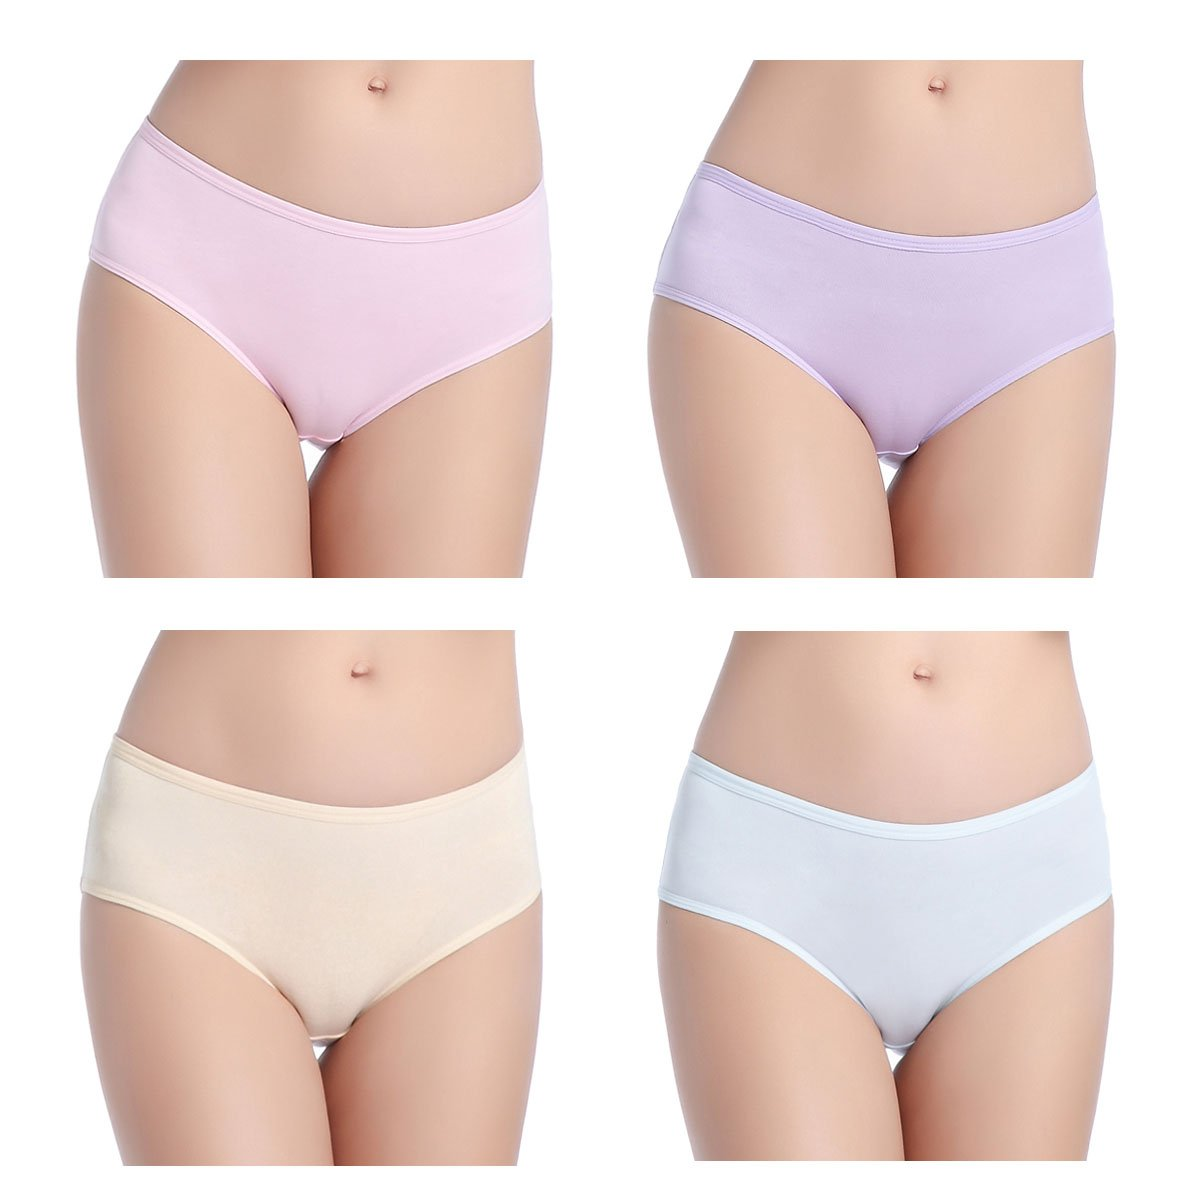 wirarpa Women's Cotton Underwear 4 Pack Low Rise Briefs Stretch Hipster Panties W-Briefs-08